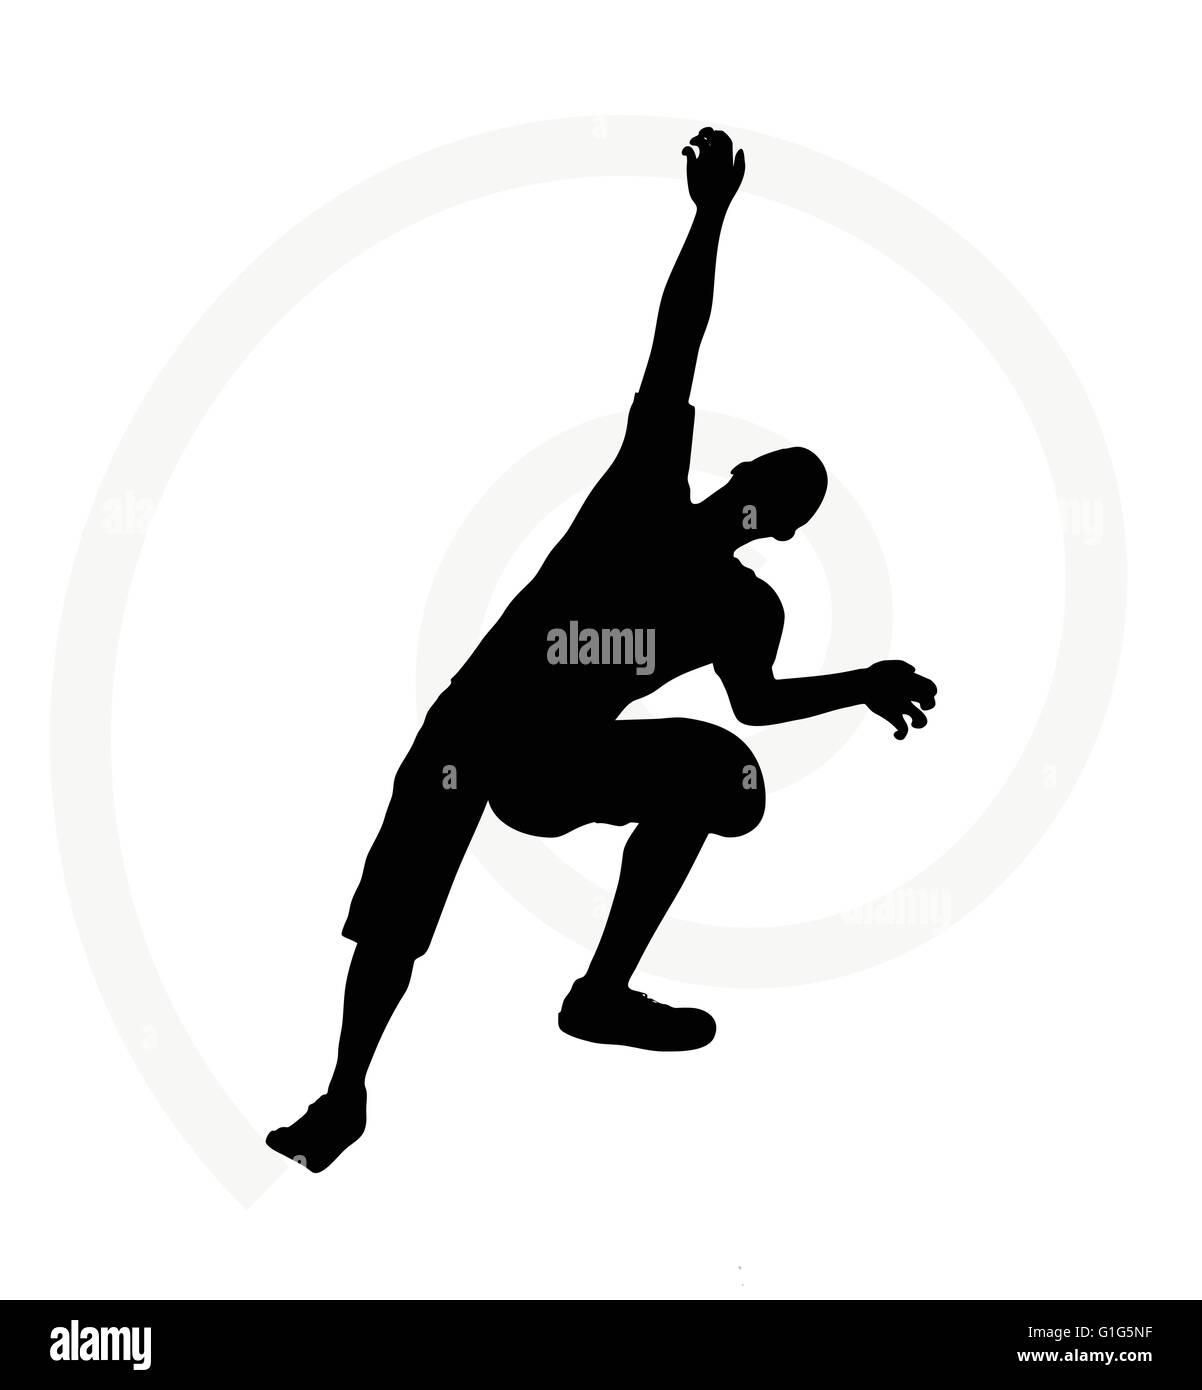 illustration of senior climber man silhouette isolated on  white background  - in climbing pose - Stock Vector